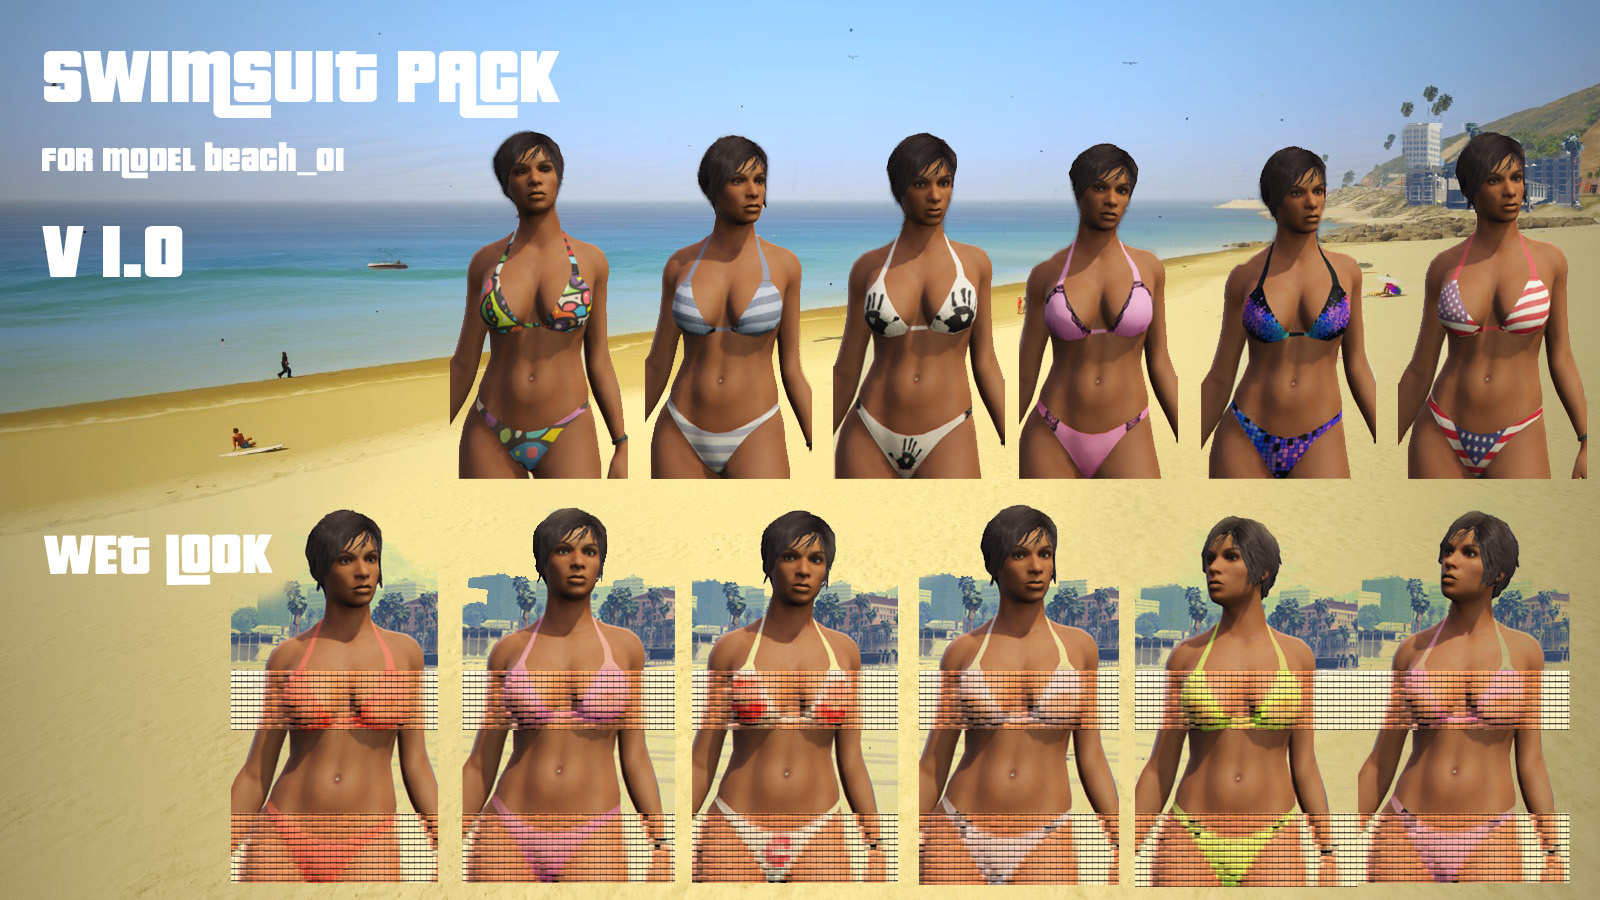 160f0e v1 new swimsuit pack gta5 mods com,Gta 5 Swimwear